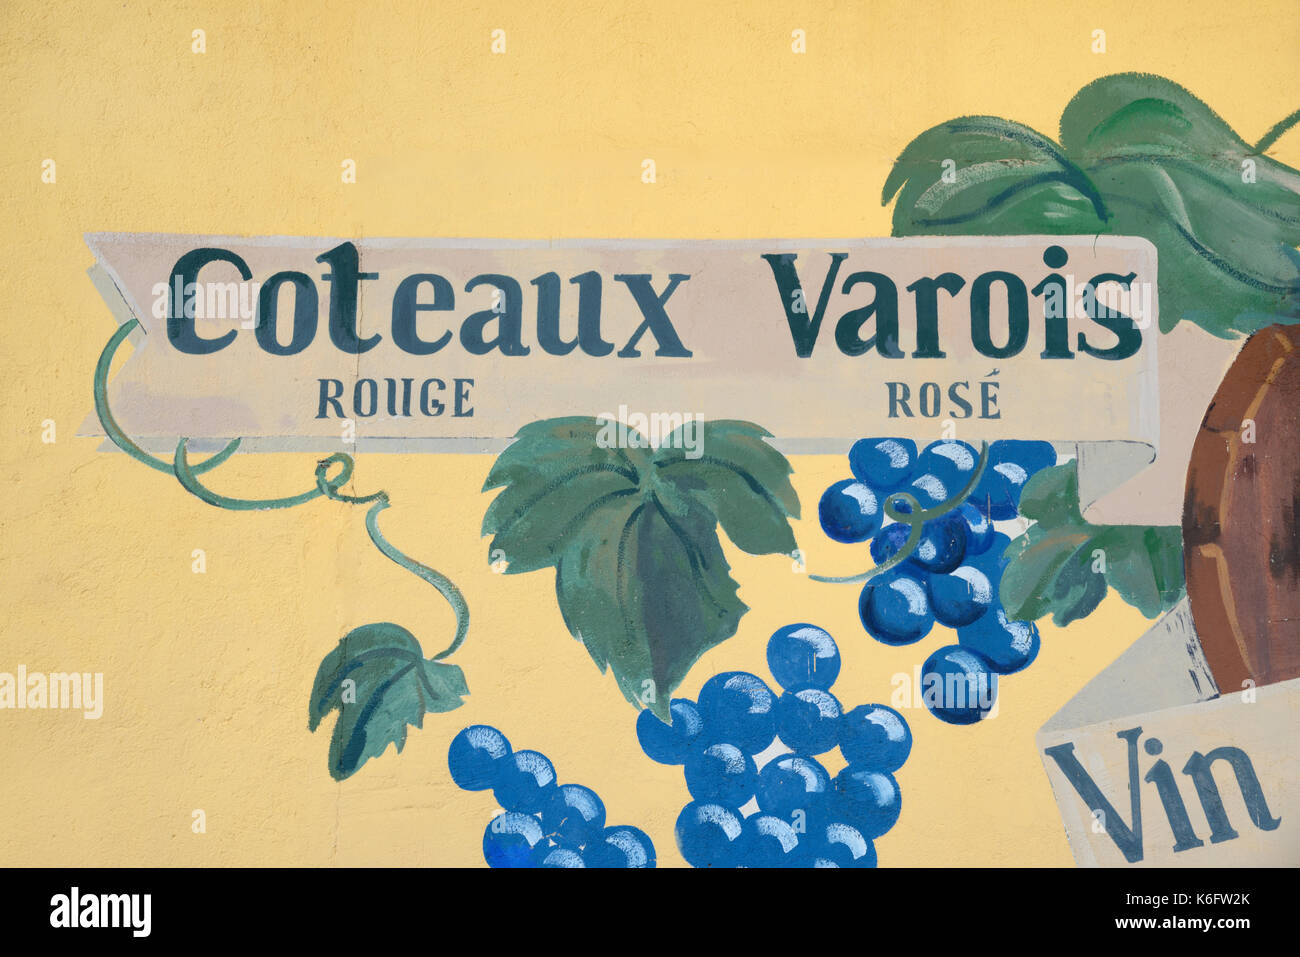 Wall Of Grapes Stock Photos & Wall Of Grapes Stock Images - Alamy